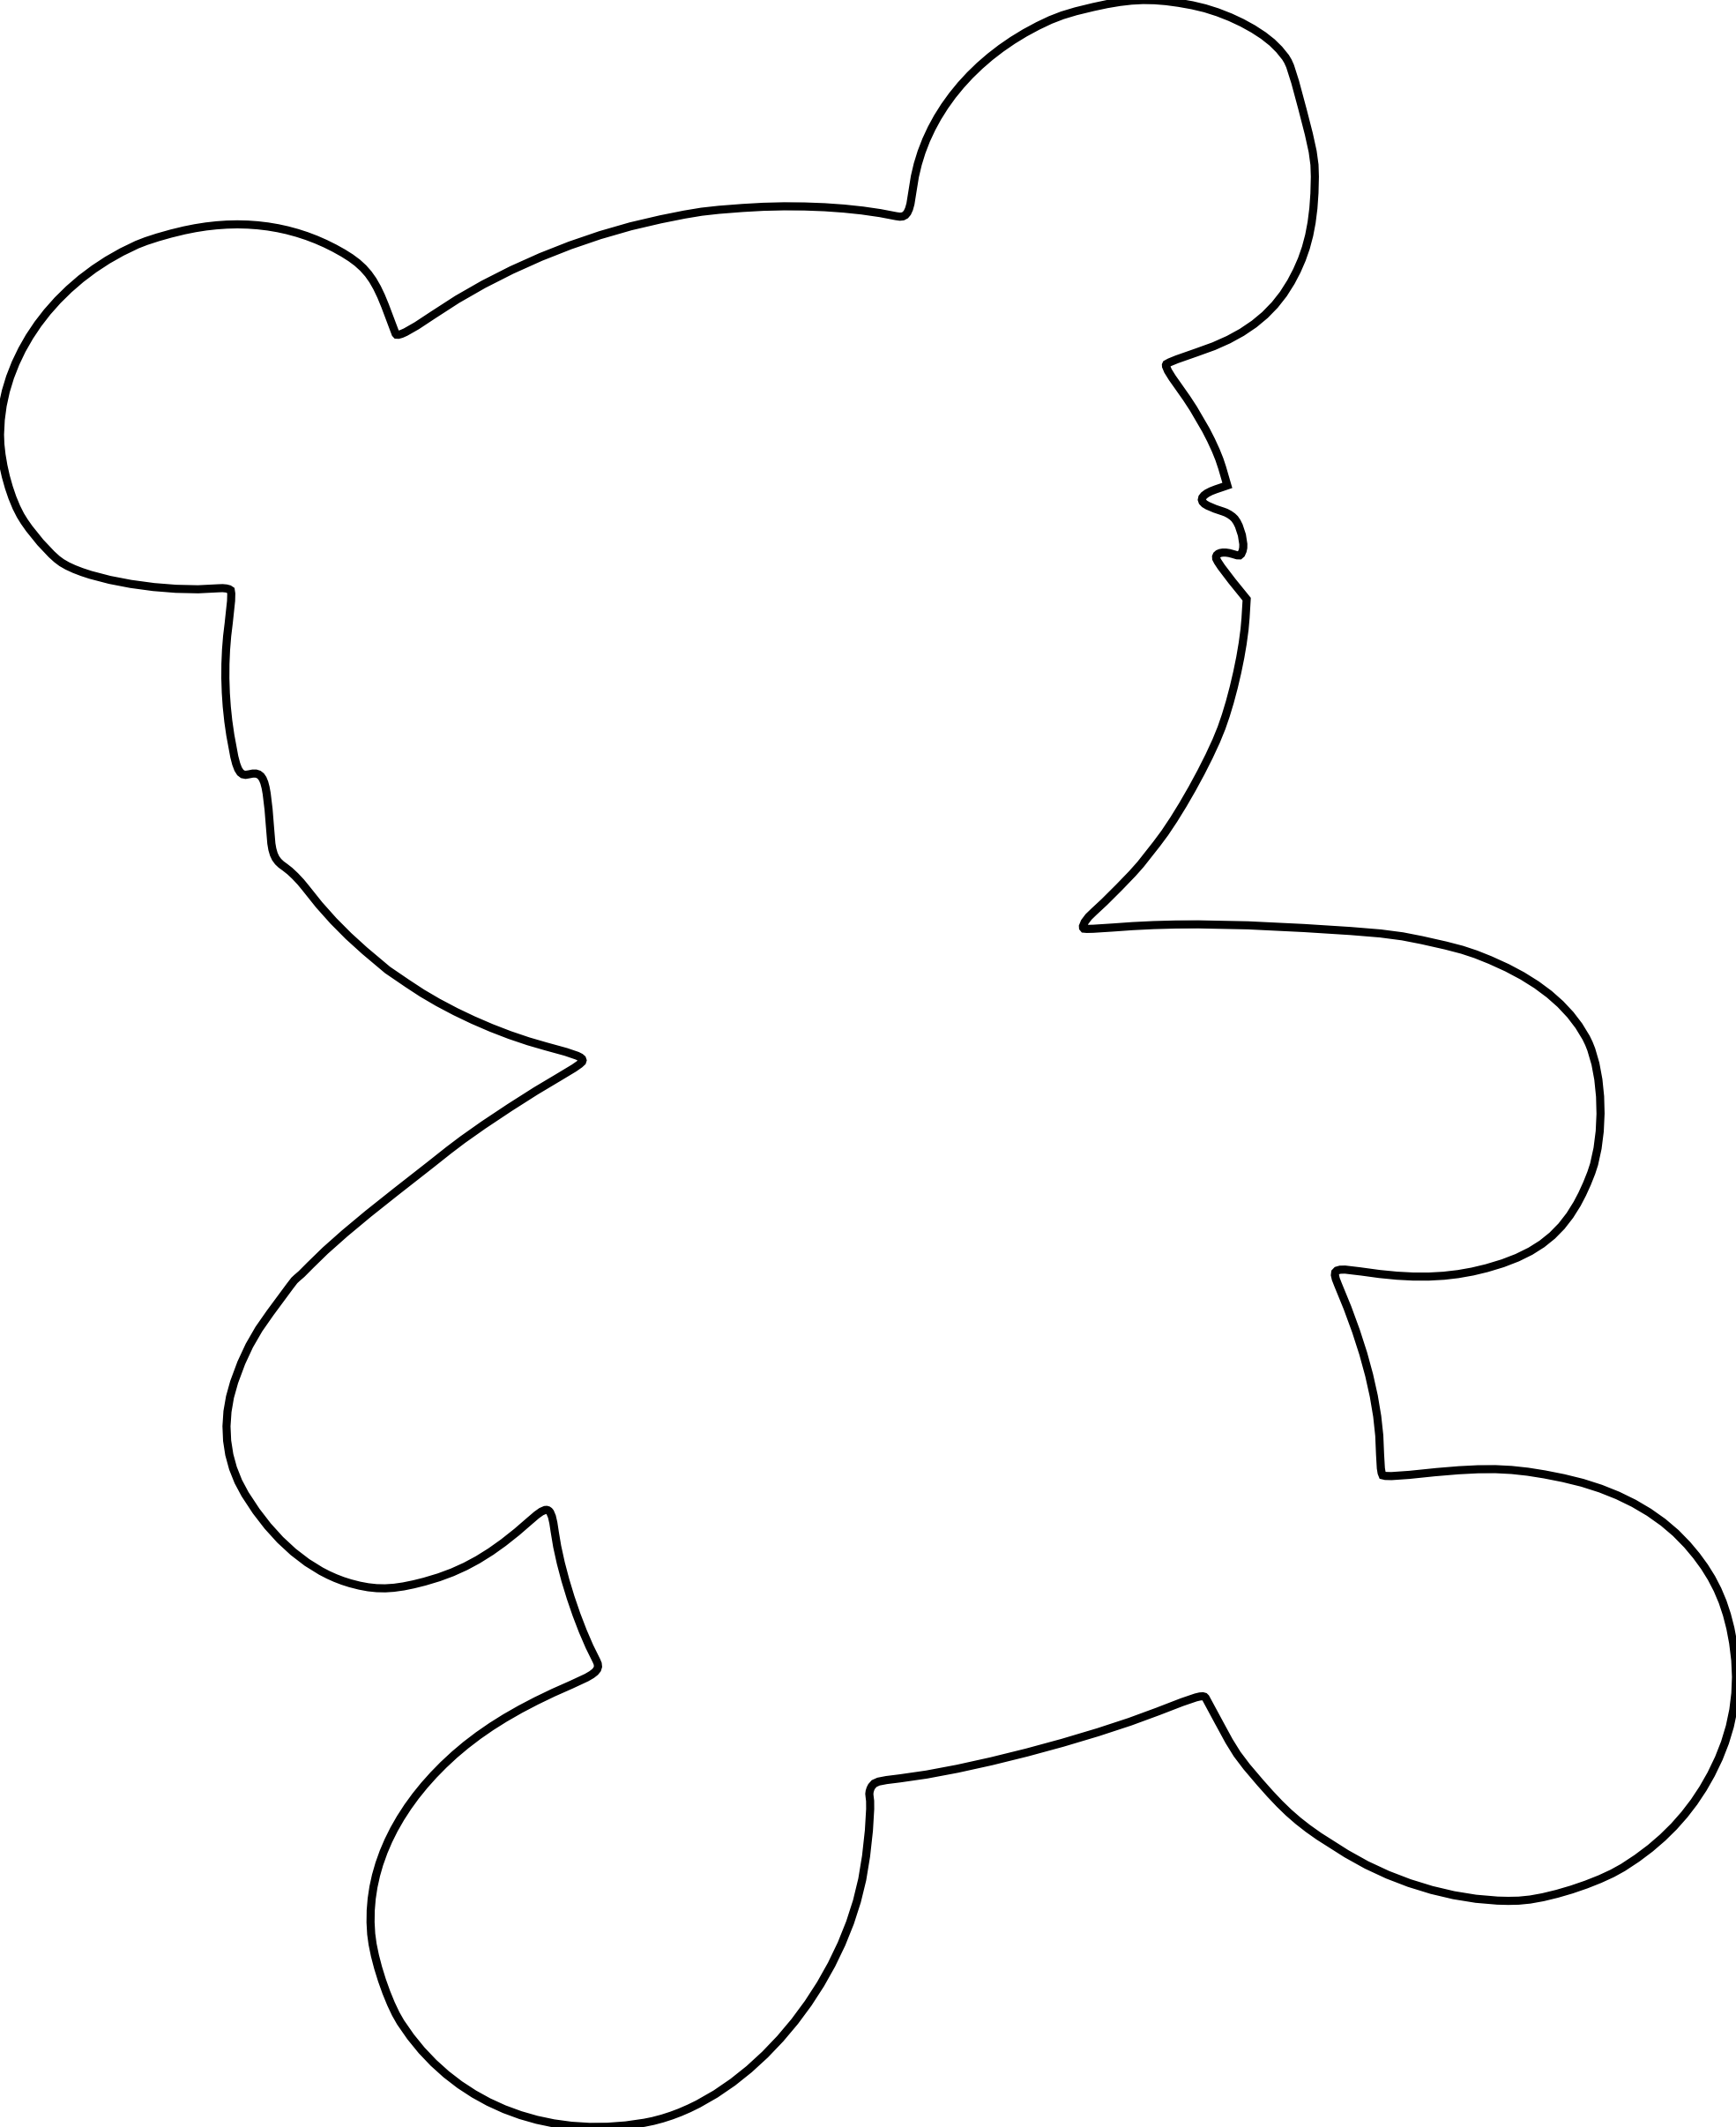 Teddy Bear Drawing Outline at GetDrawings.com | Free for personal ...